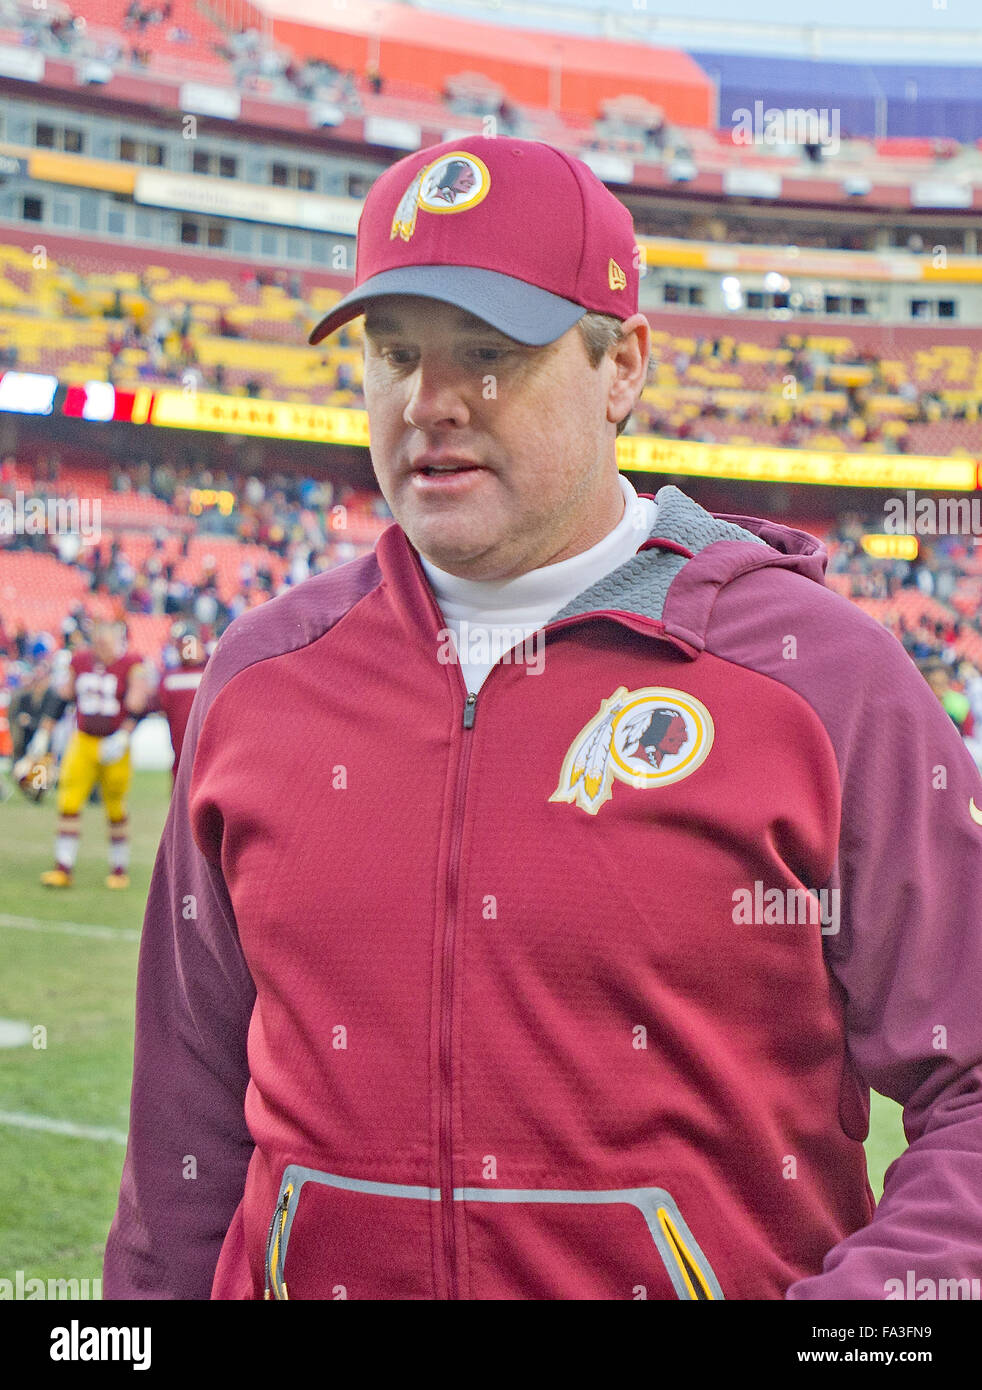 e4a7f398a Washington Redskins head coach Jay Gruden leavees the field following his  team s 35-25 victory